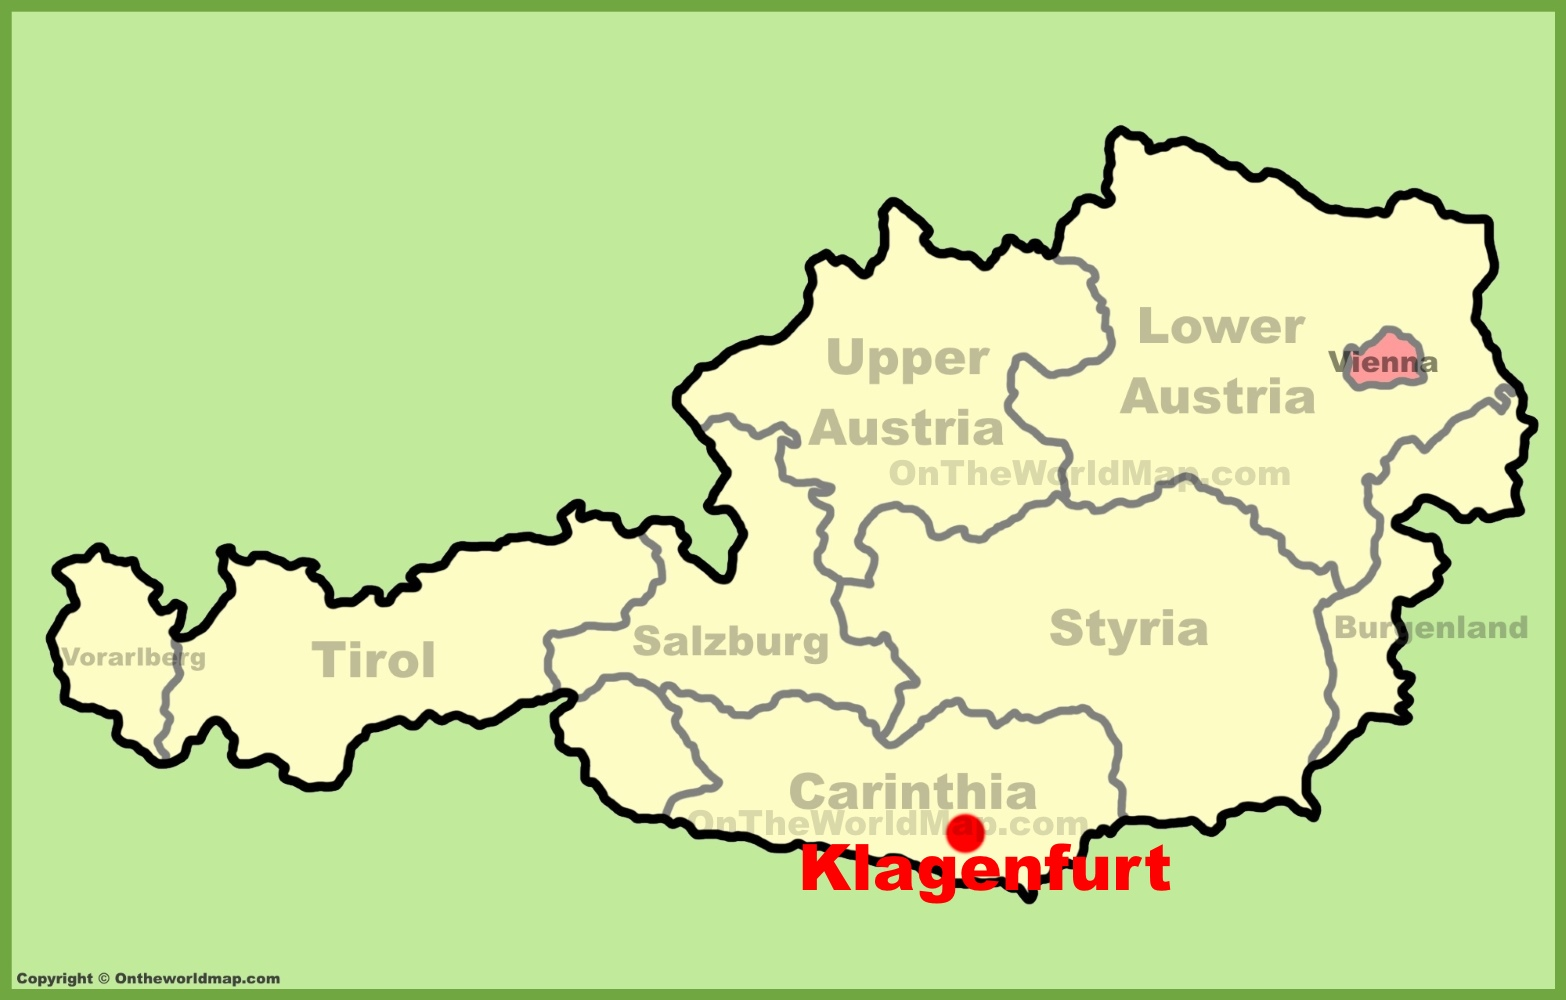 Klagenfurt location on the Austria Map